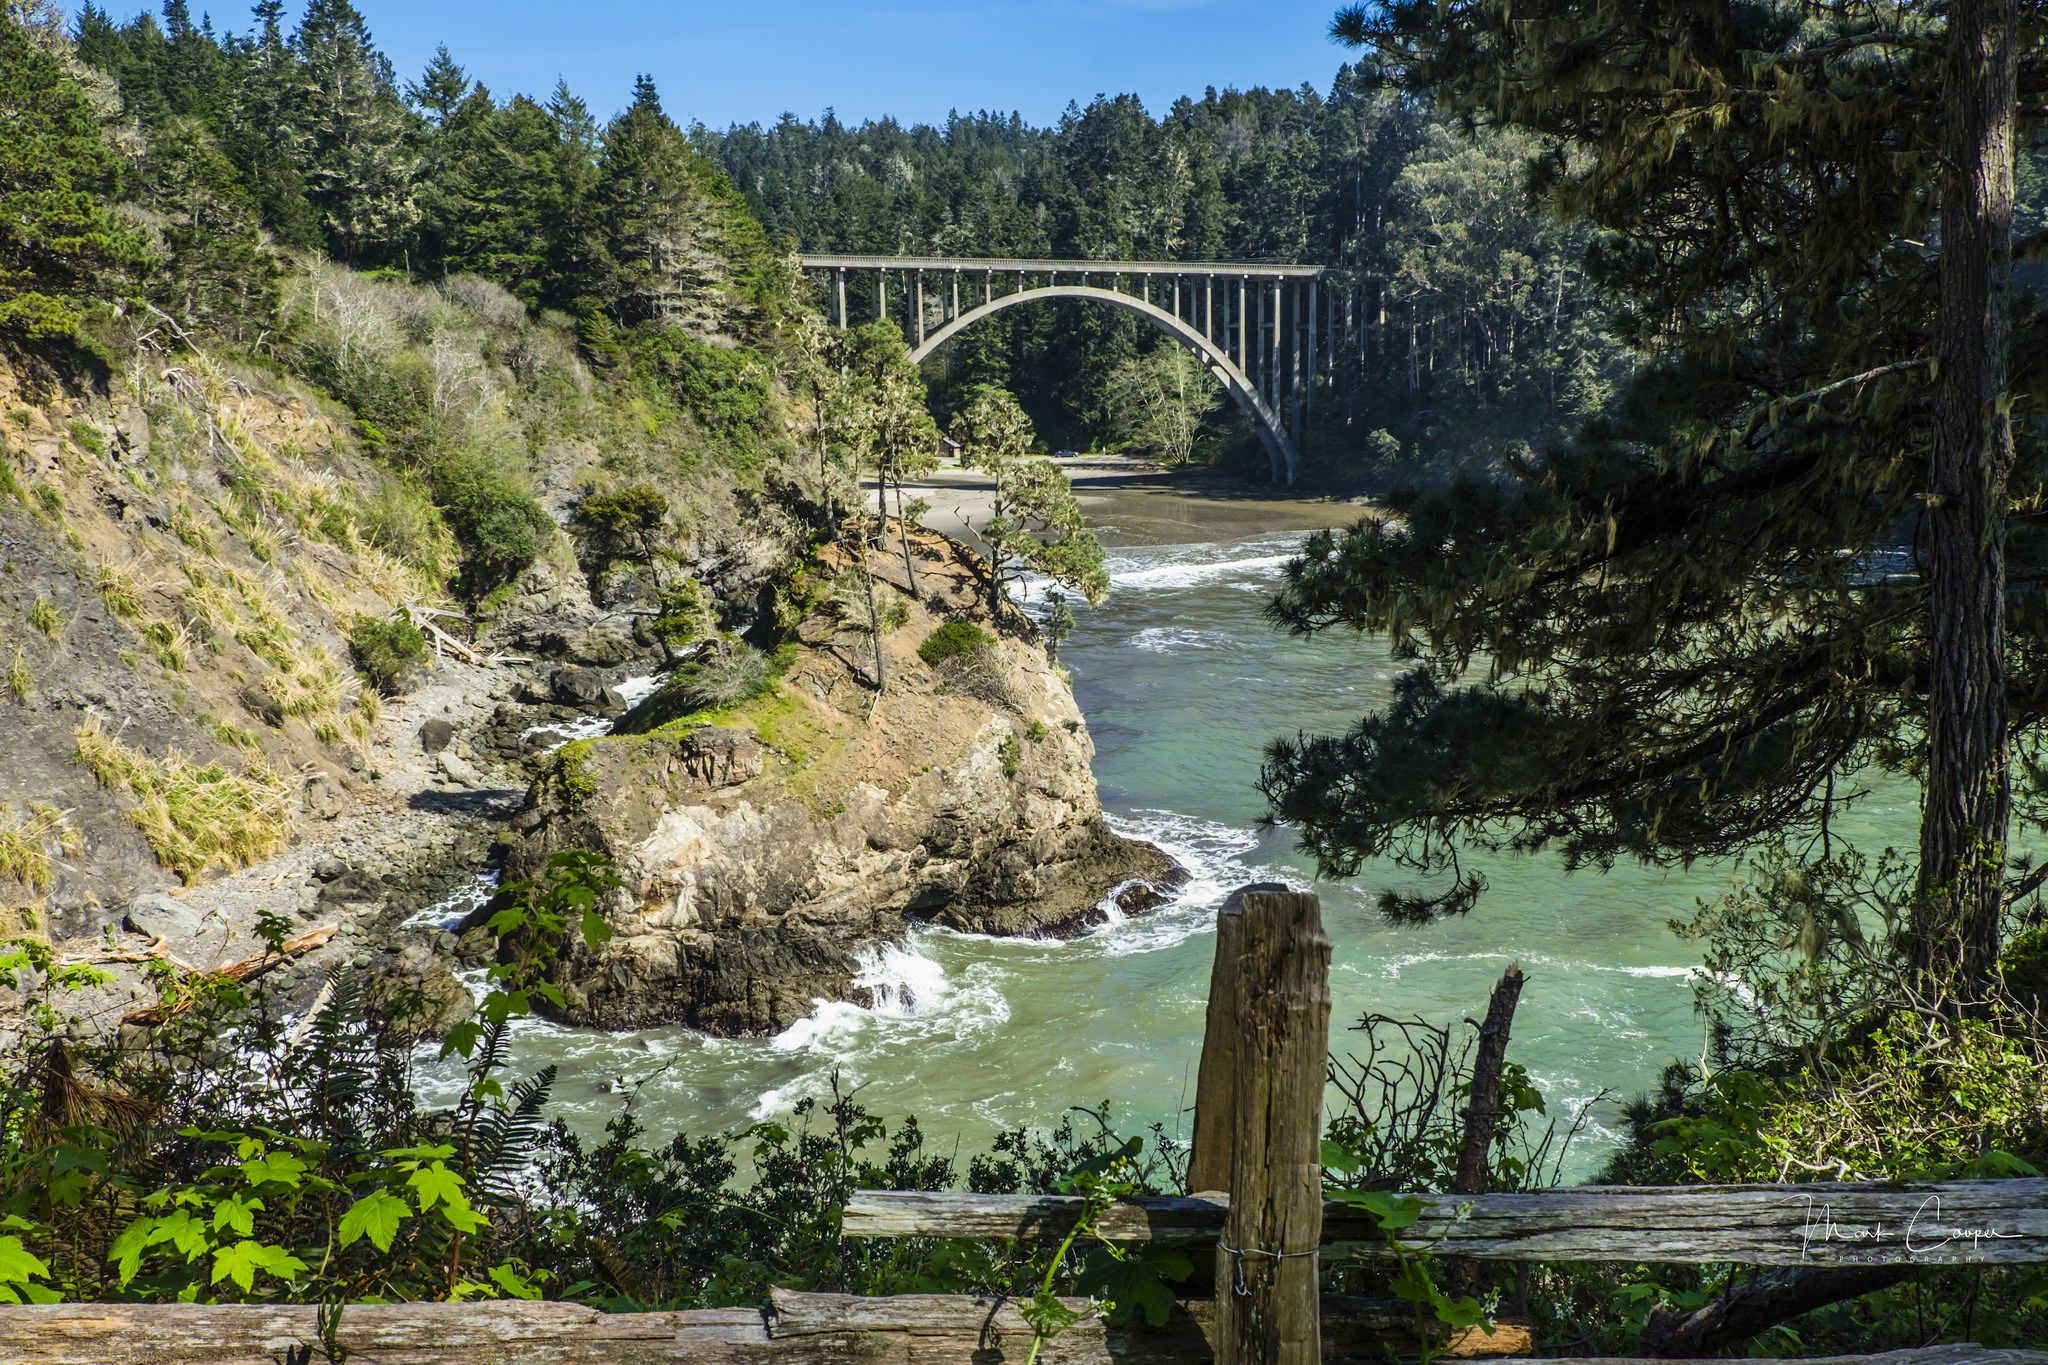 21 places in northern california you must see before you die